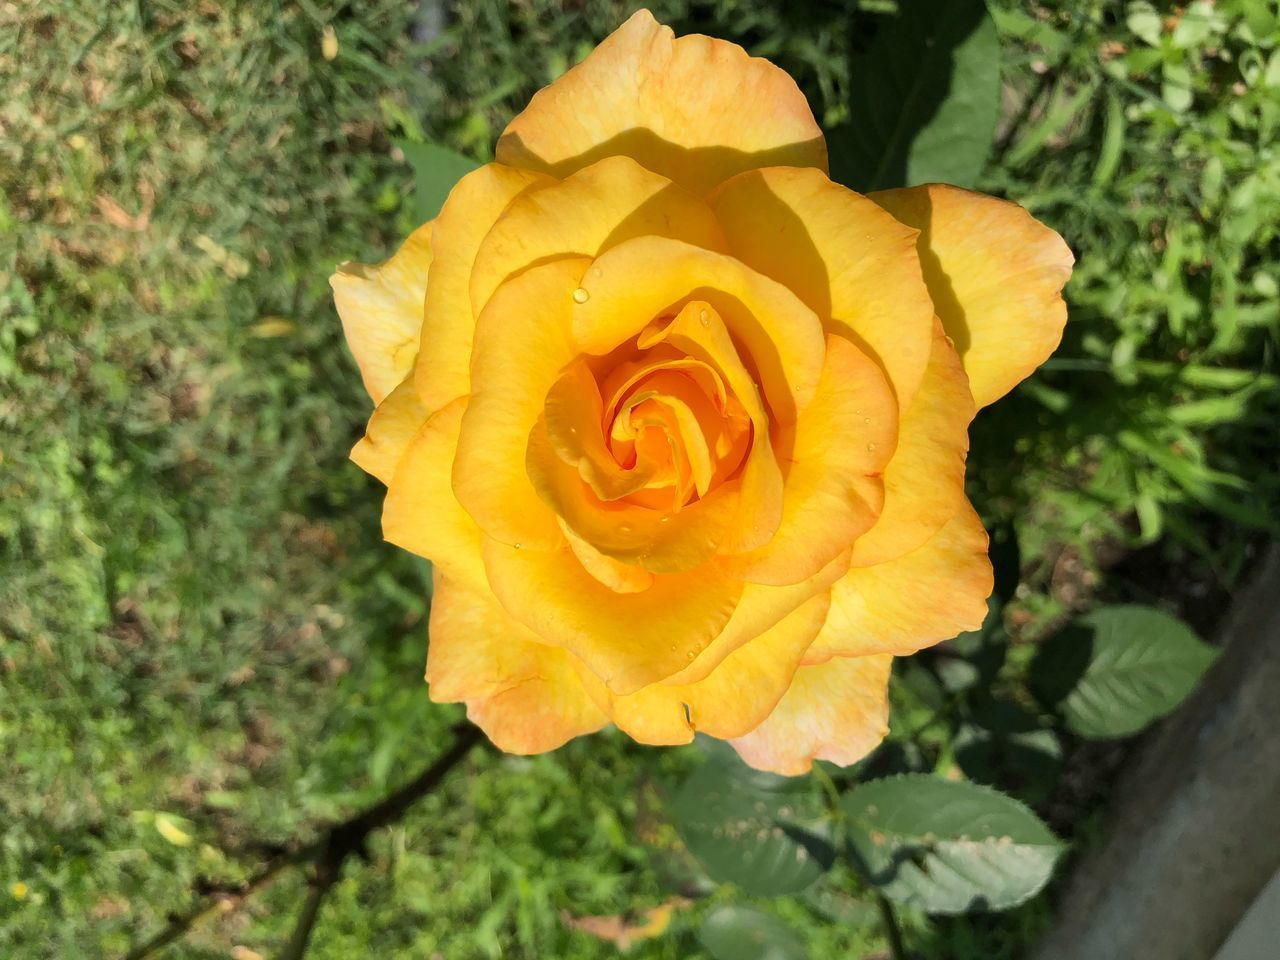 CLOSE-UP OF YELLOW ROSE IN BLOOM